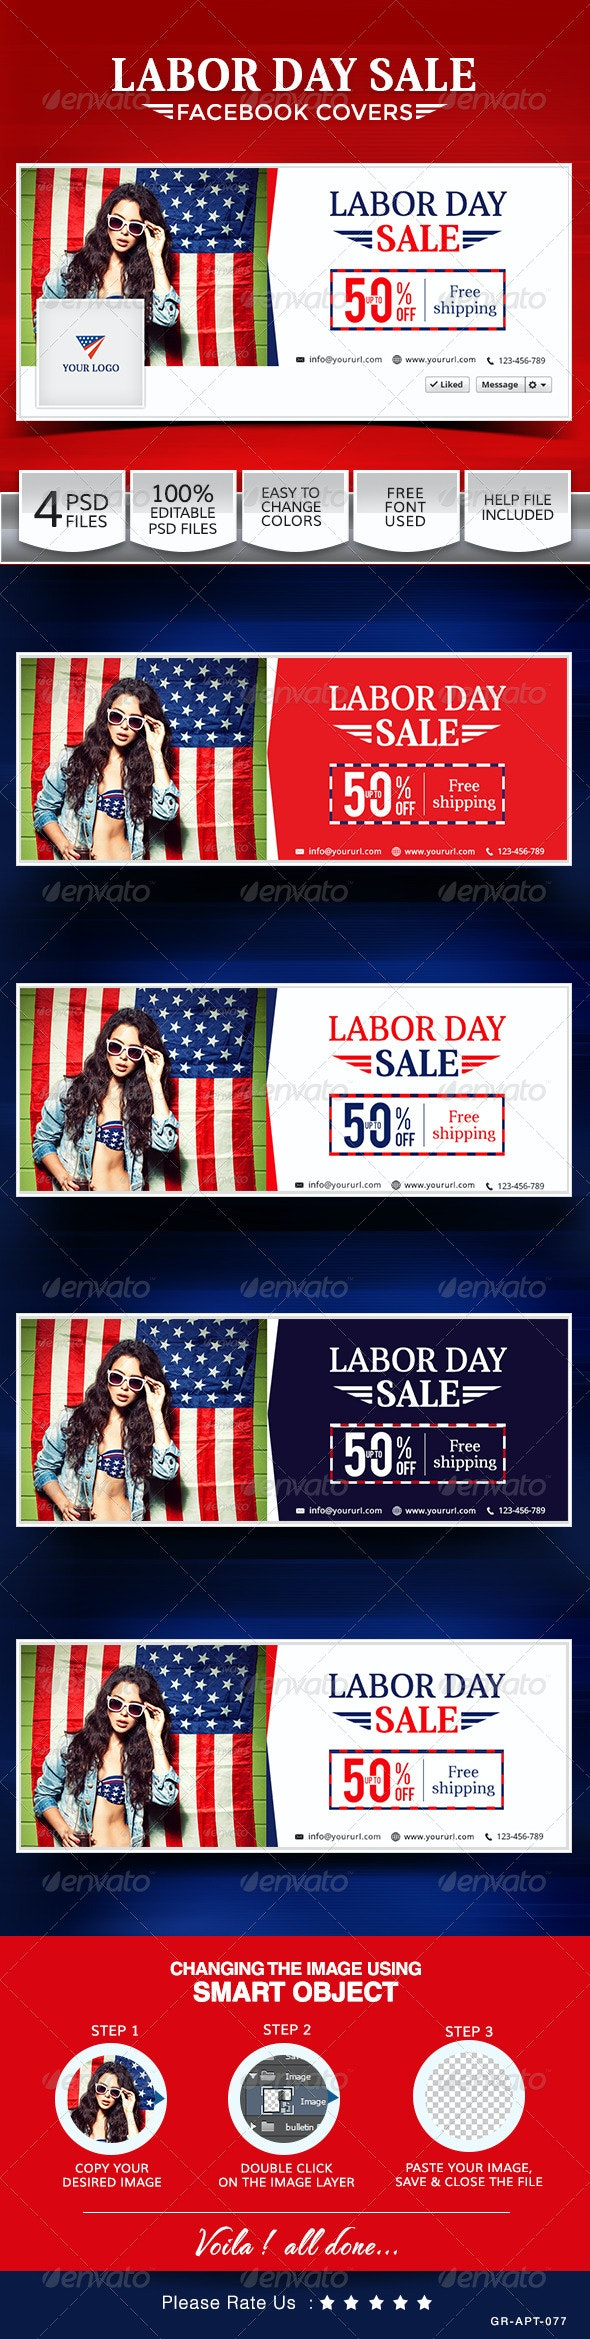 Labor Day Sale Facebook Covers - Facebook Timeline Covers Social Media